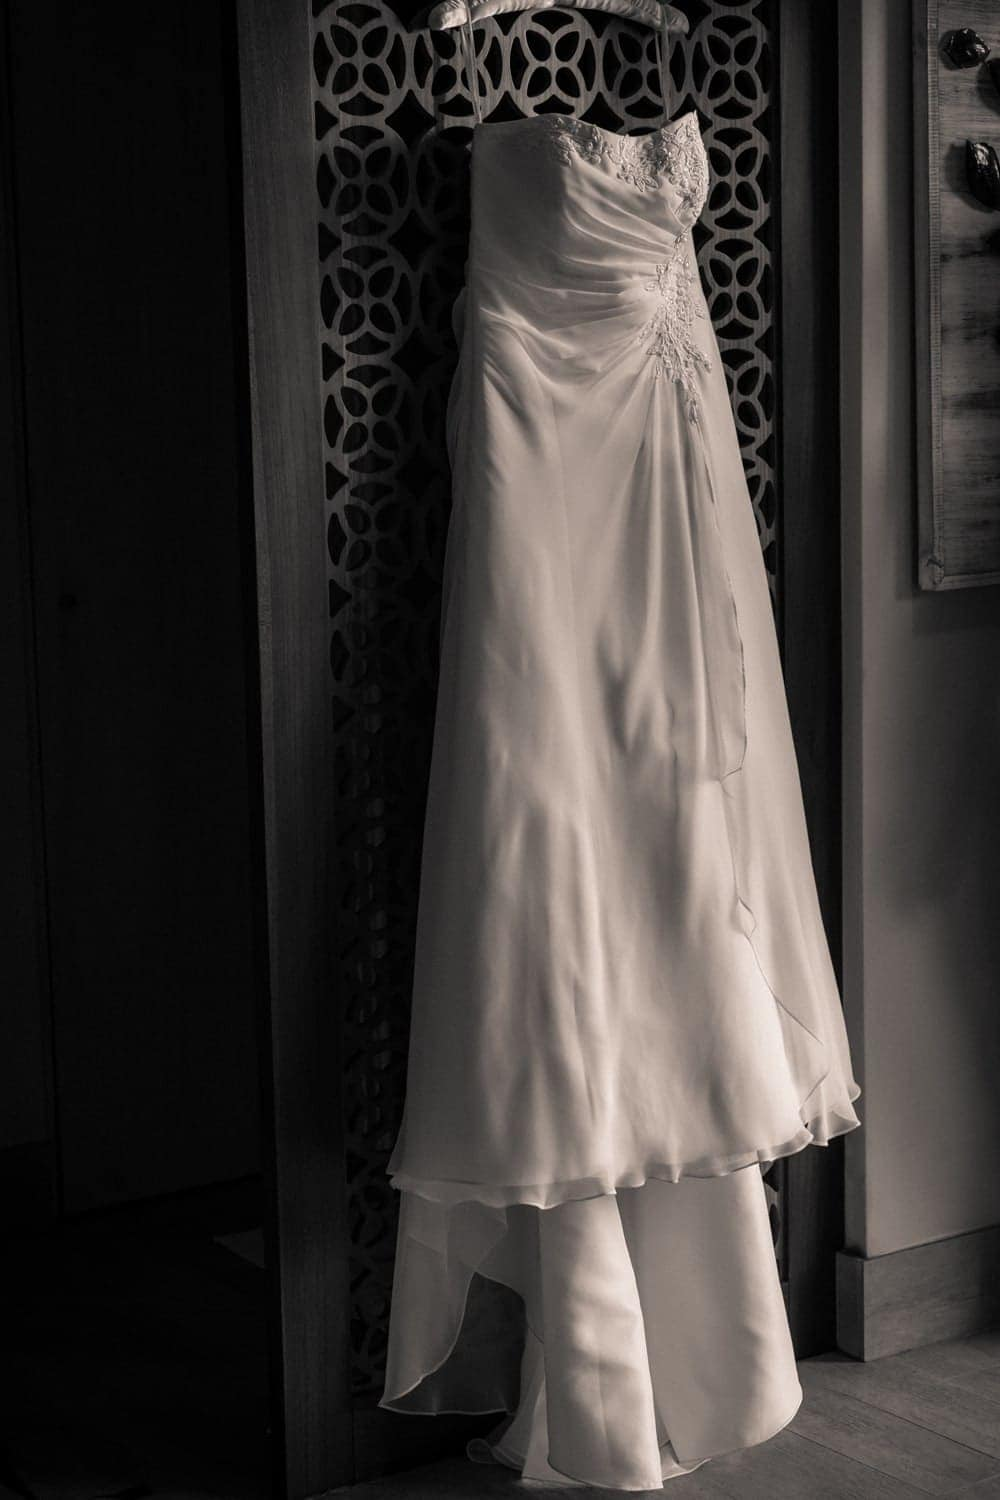 White wedding dress hangs from ornate wood wall in bridal suite at Secrets Papagayo.